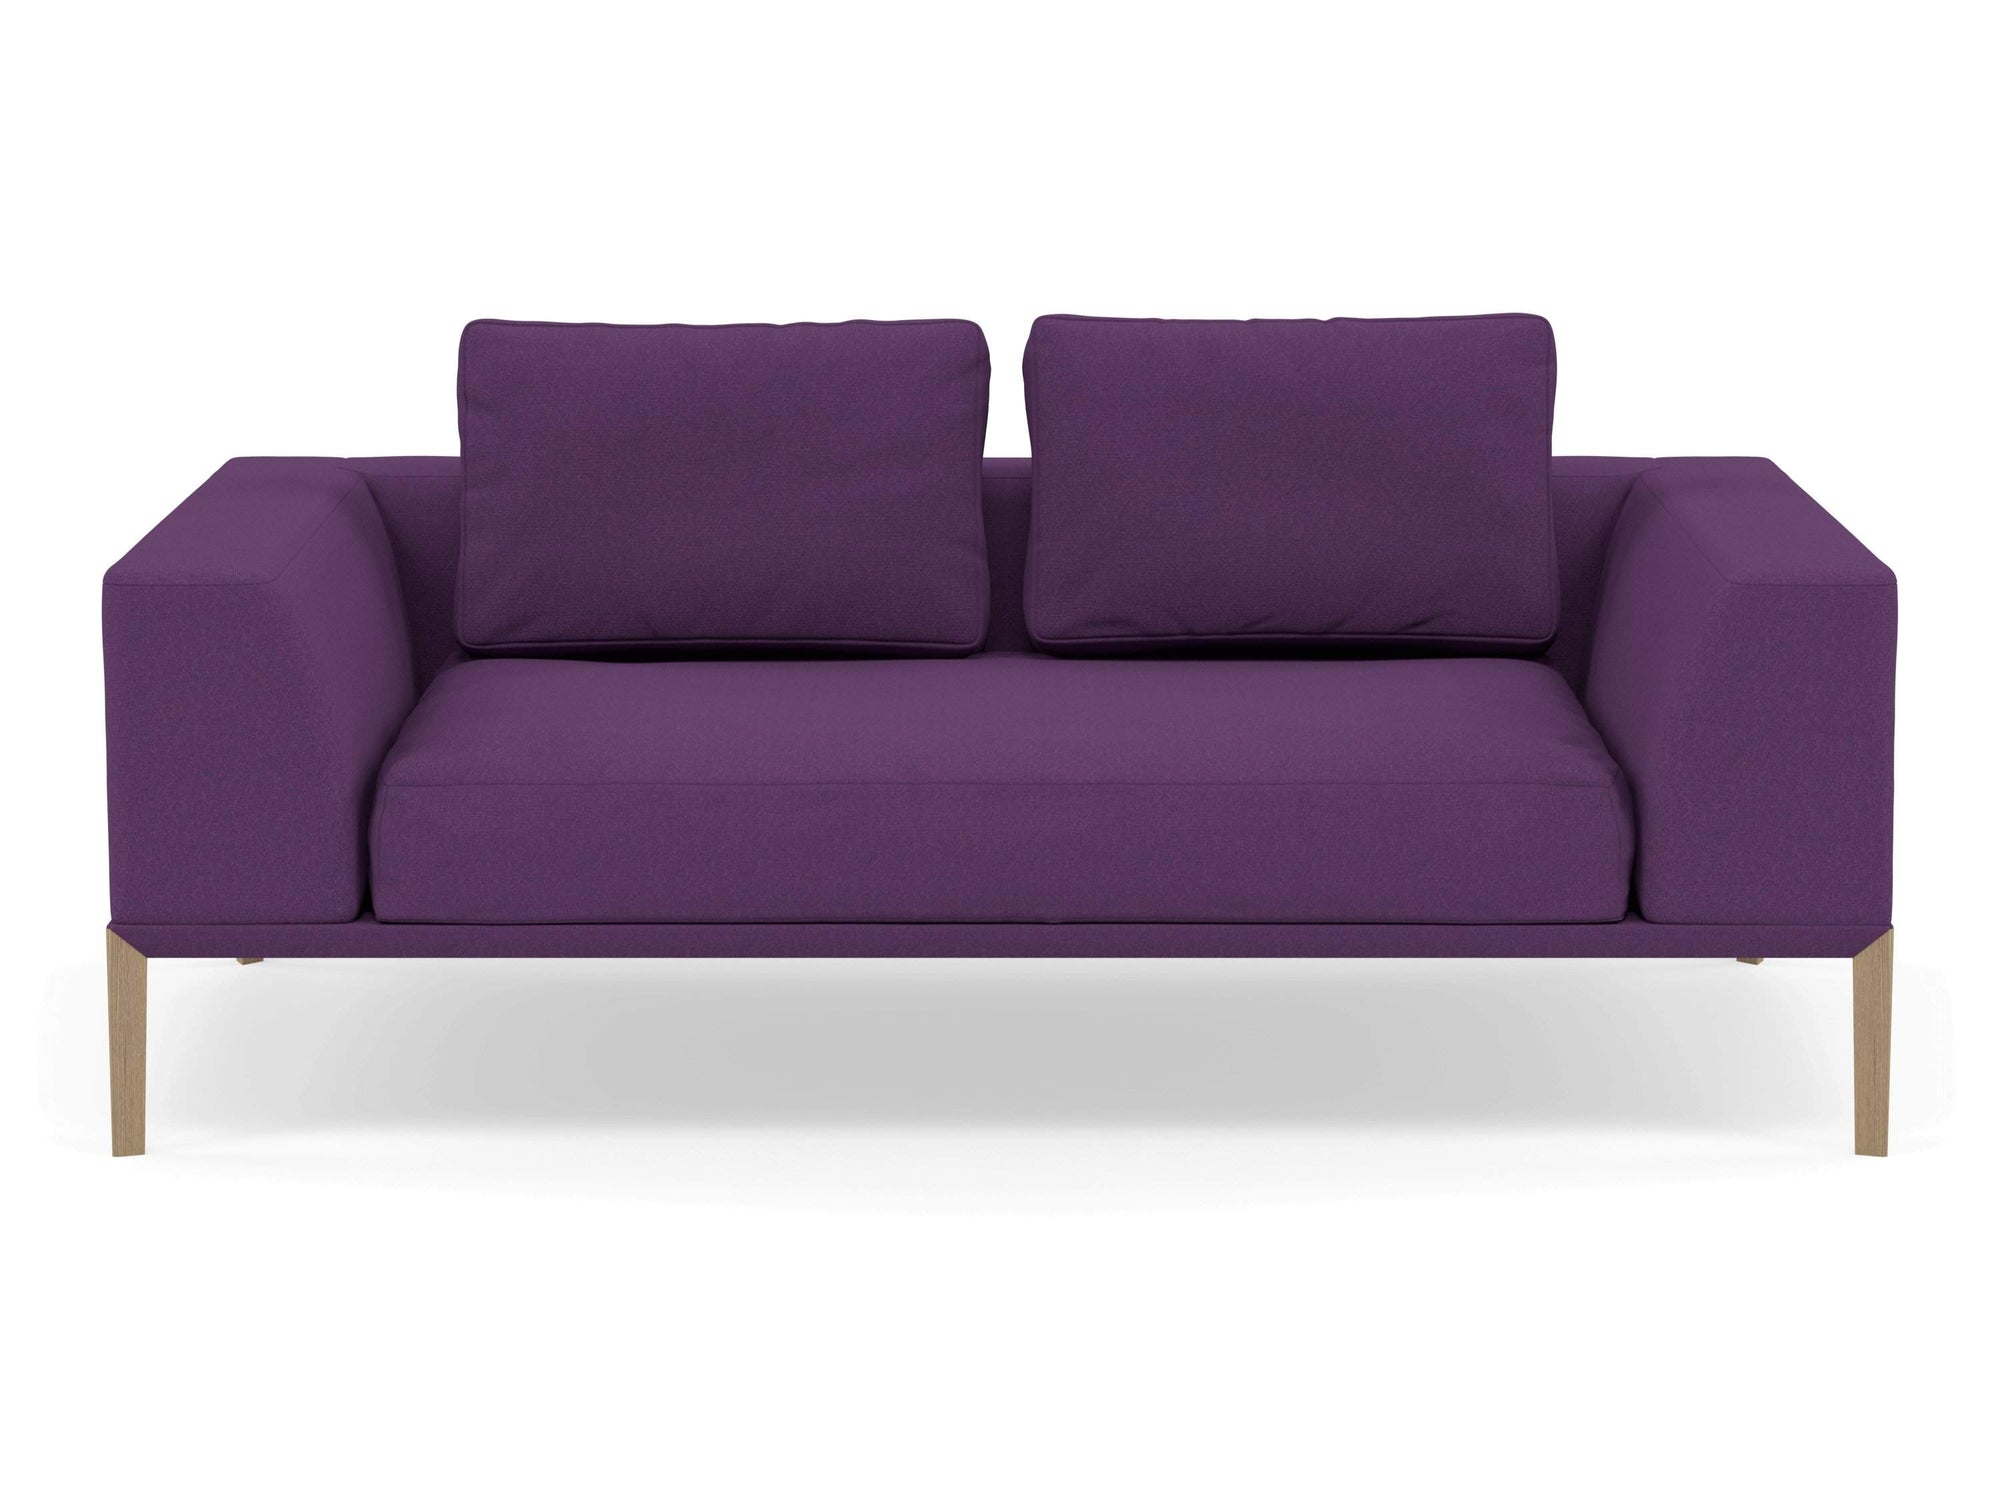 Modern 2 Seater Sofa with Armrests in Deep Purple Fabric-Natural Oak-Distinct Designs (London) Ltd